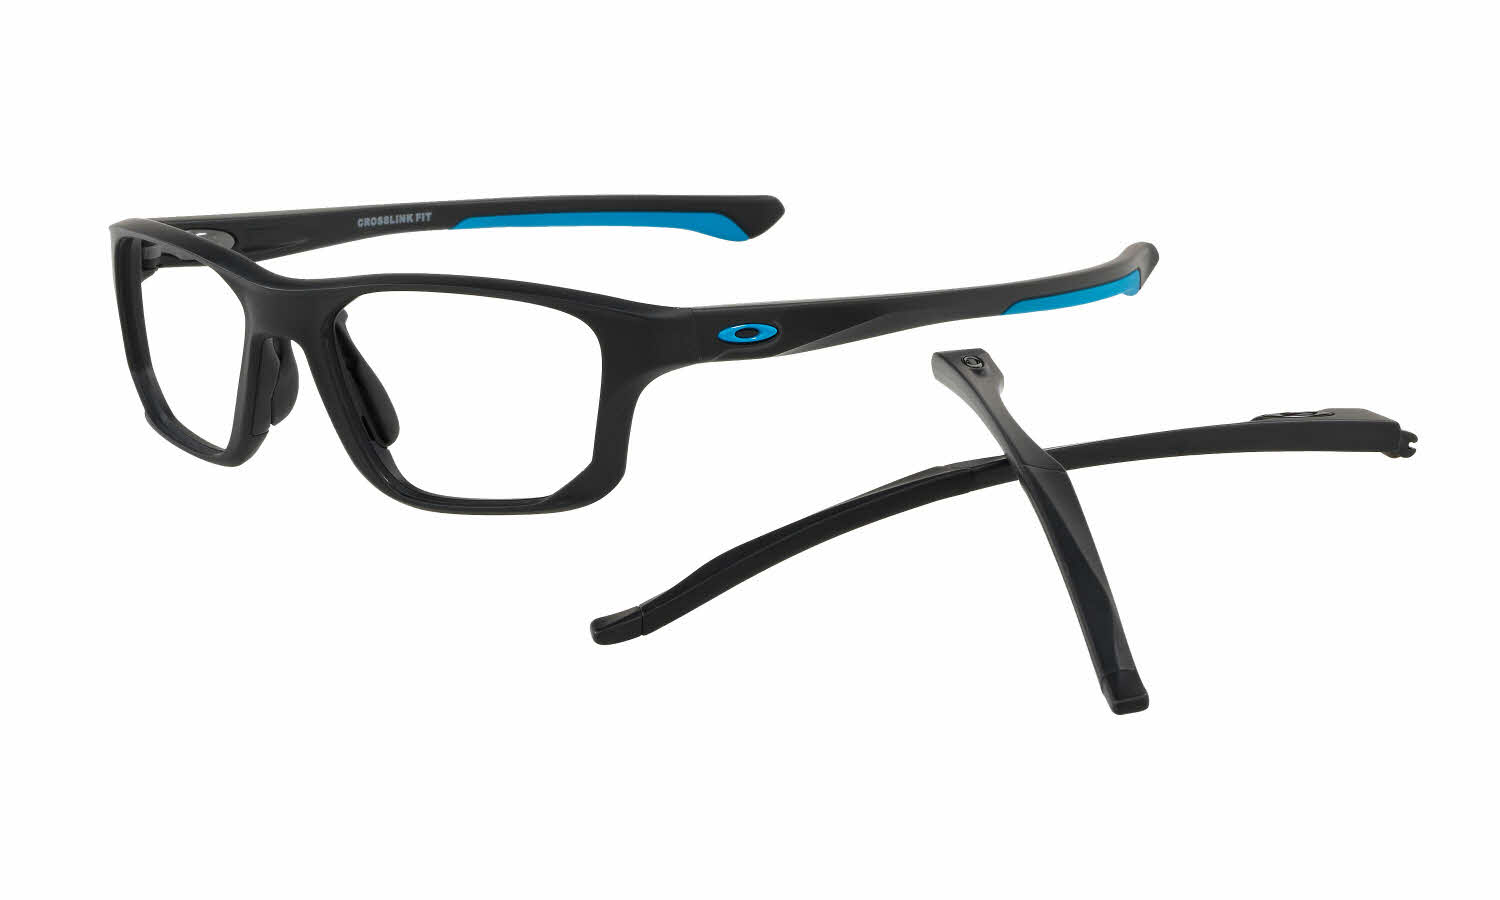 7656192f55a Oakley Crosslink Fit Eyeglasses